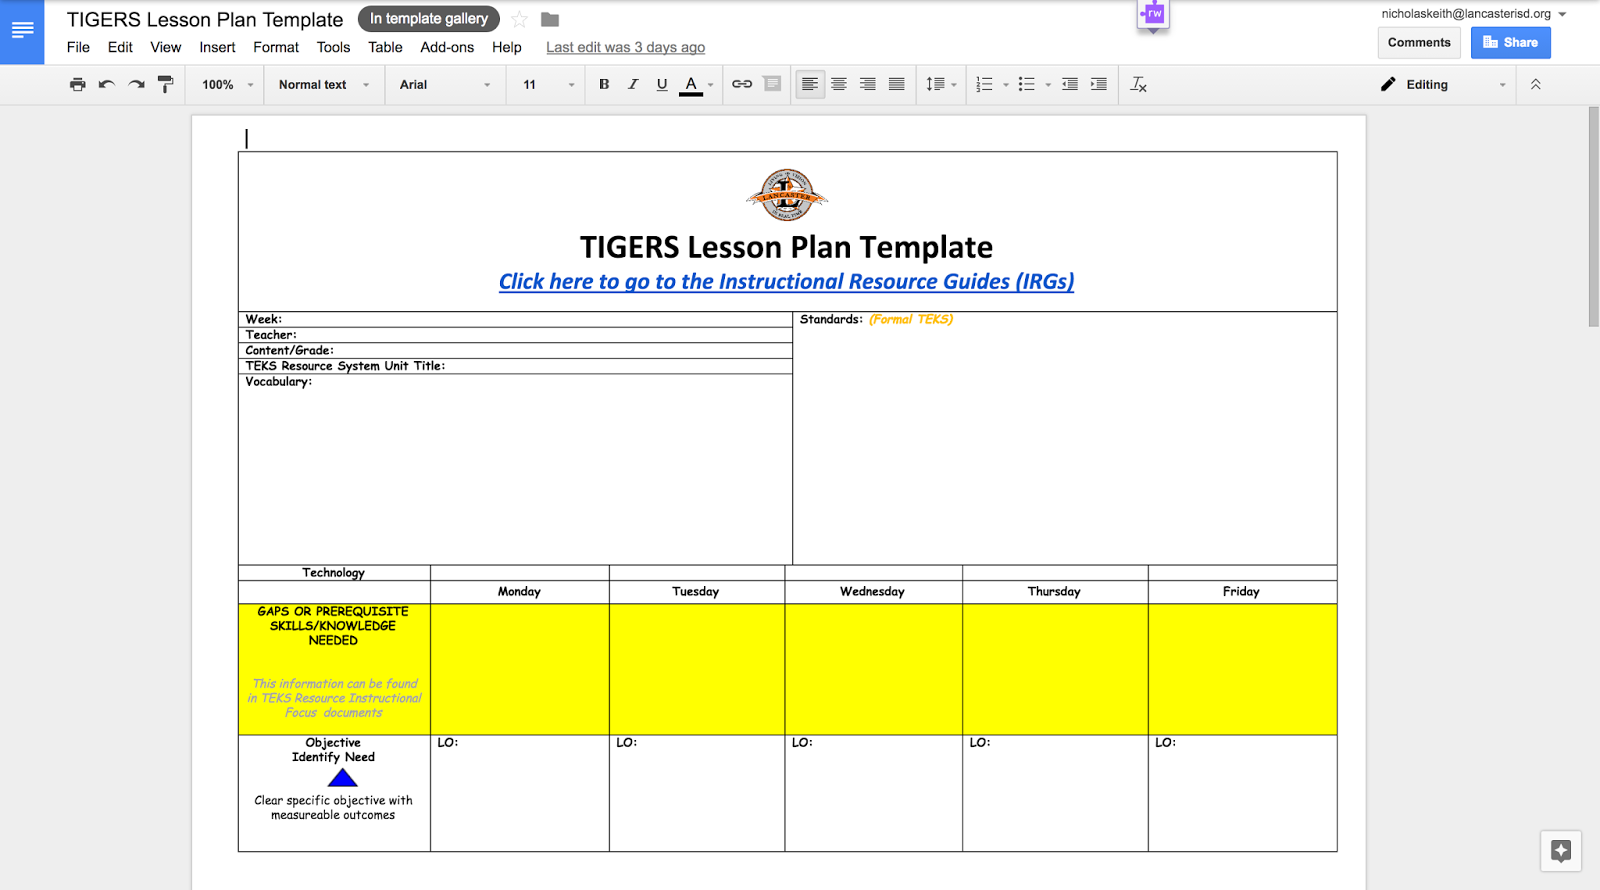 Texas edtech using google team drives to create and share lesson create a google doc with the lesson plan template for your campus saigontimesfo